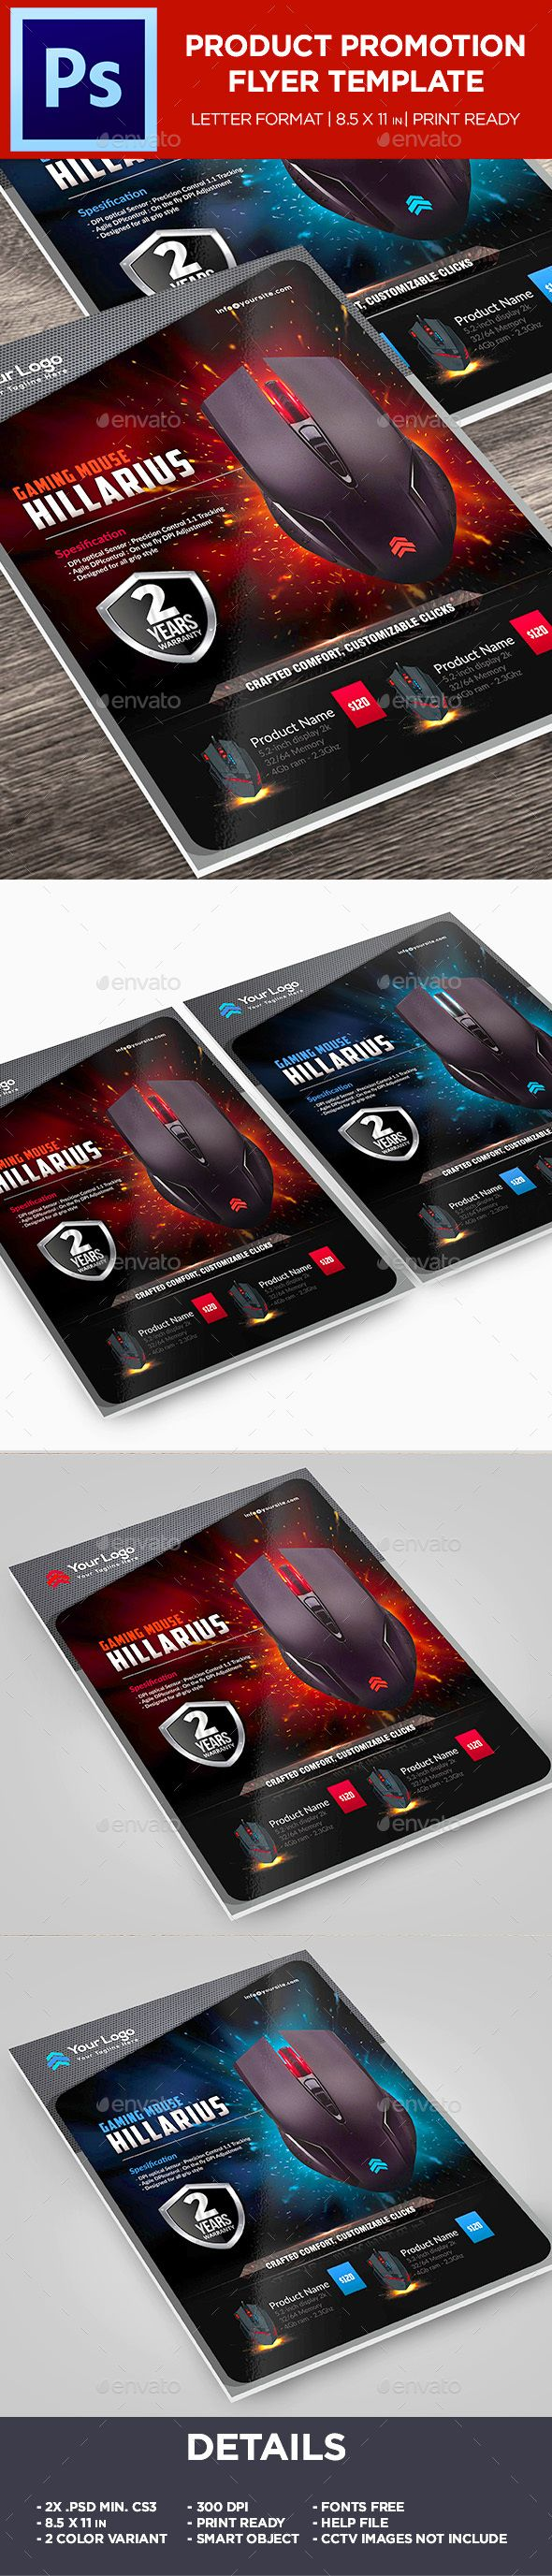 Gaming Mouse Product Flyer - Corporate Promotion Flyer